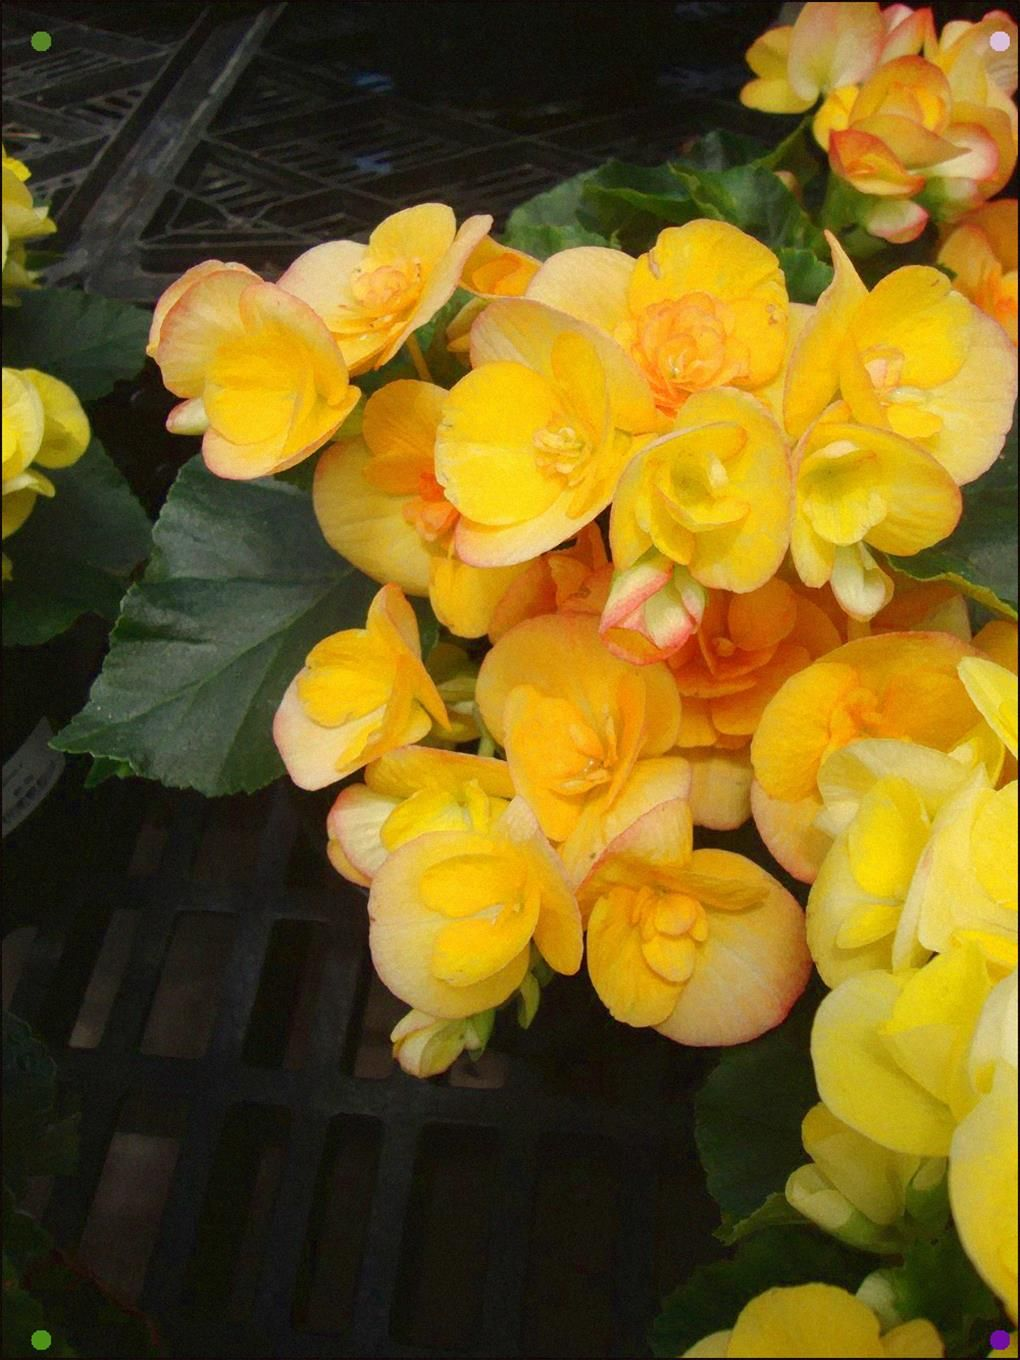 I Love These Yellow Begonias Begonia Amazing Flowers Flowers